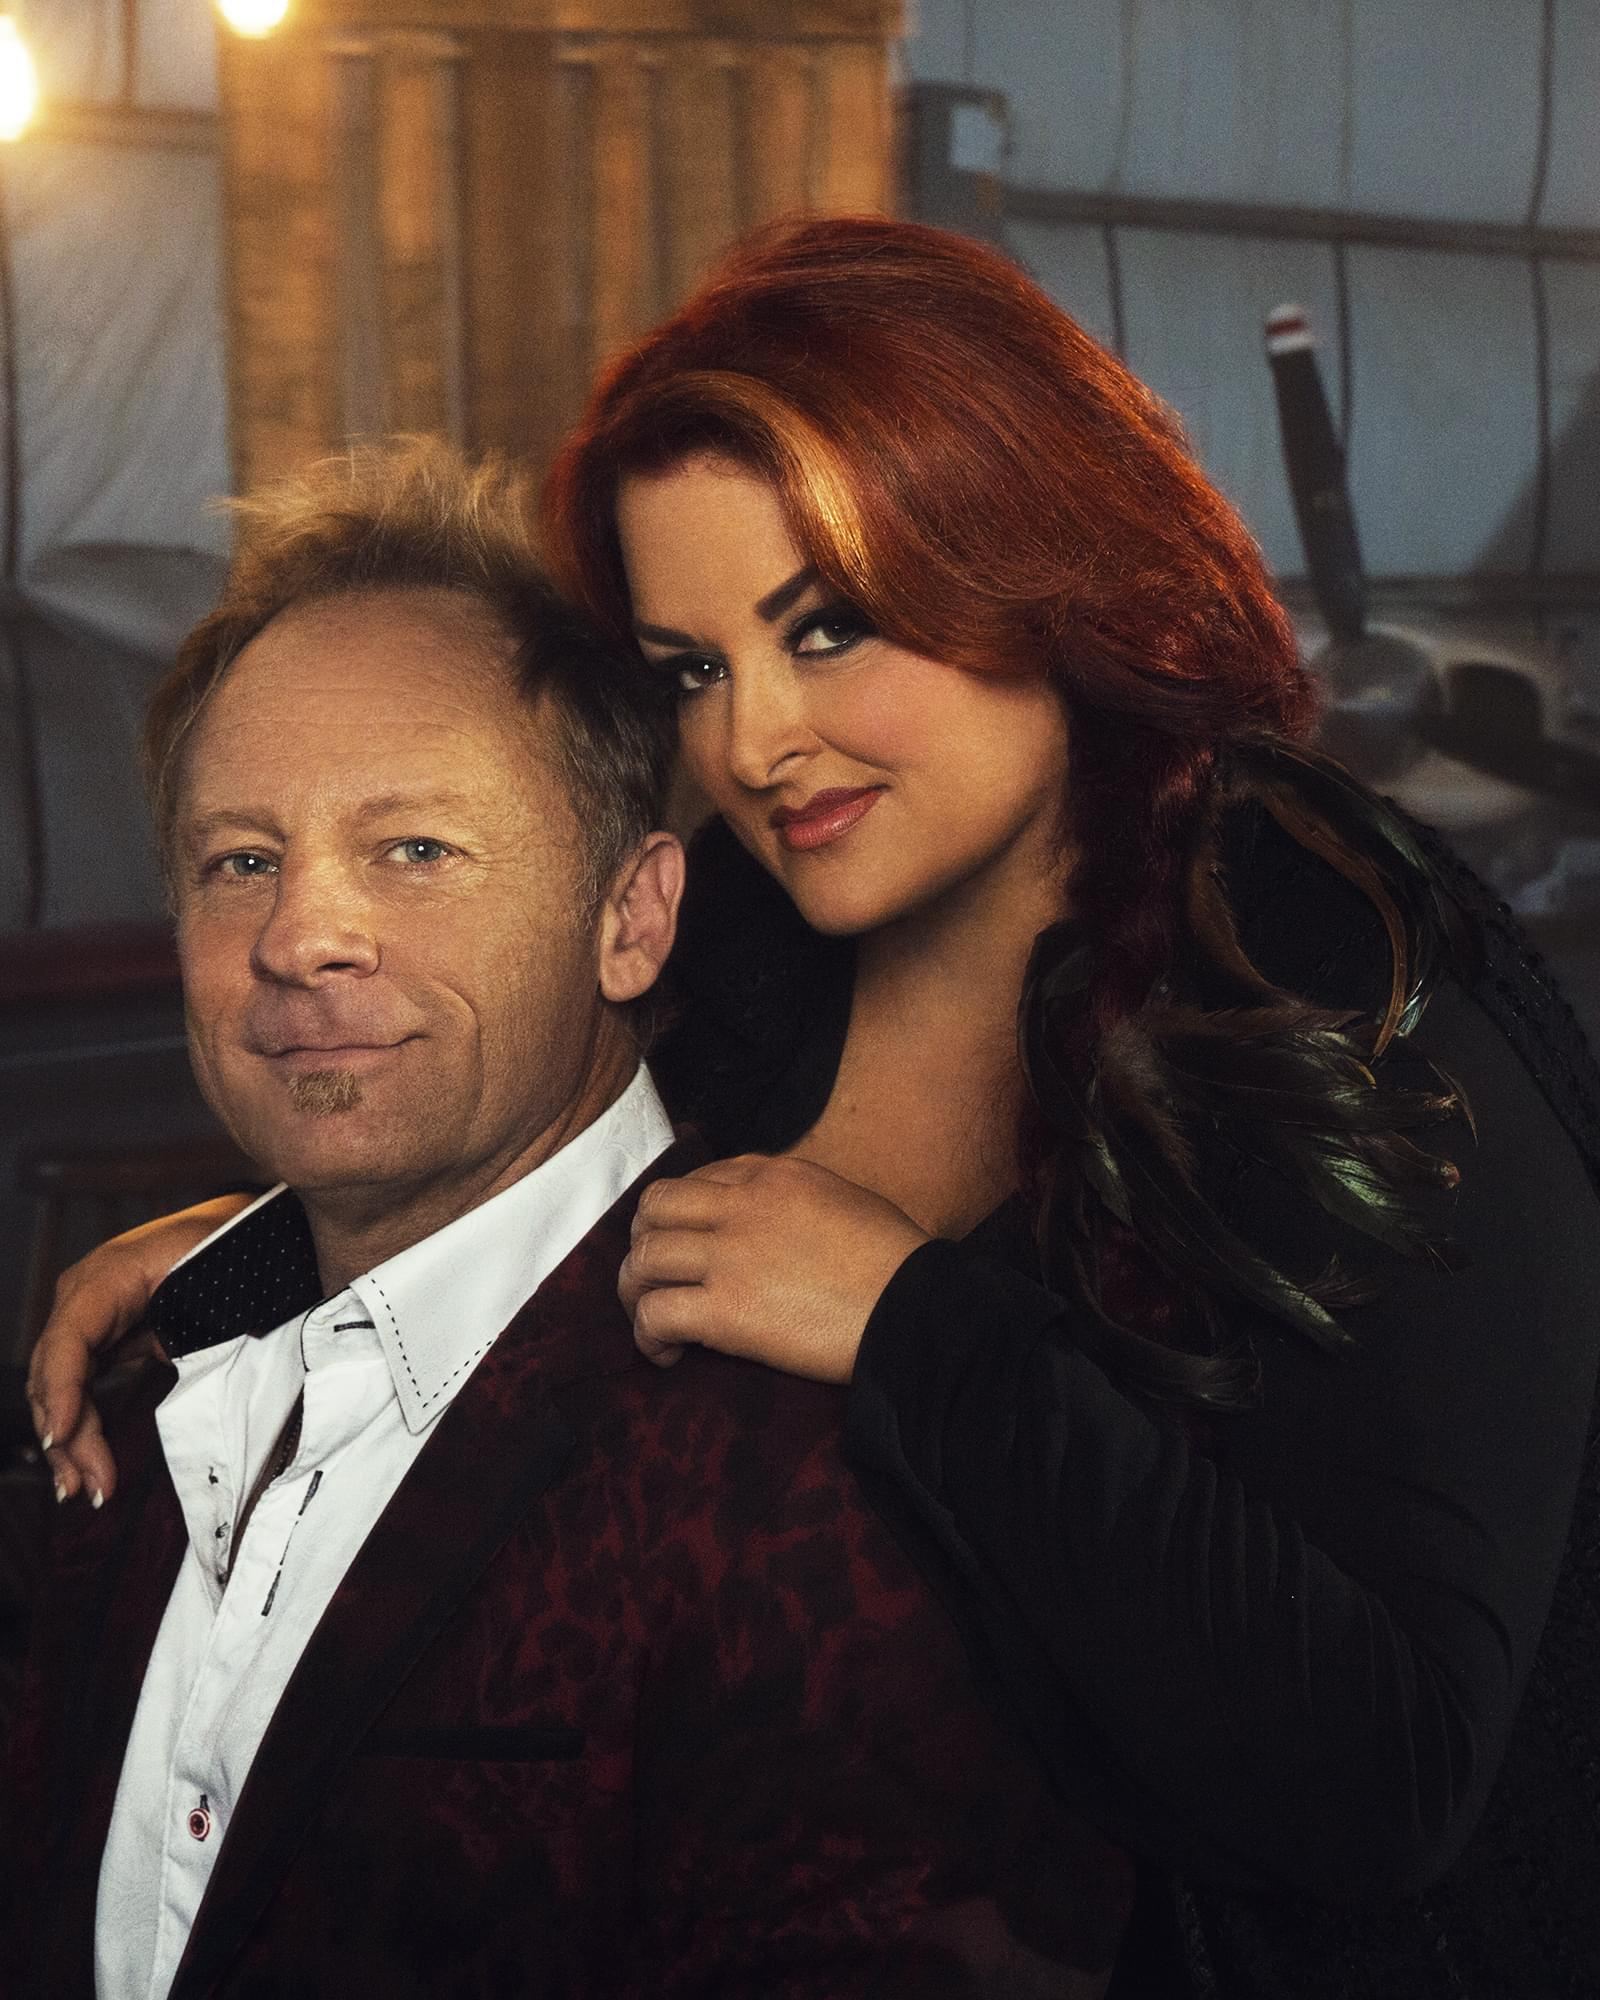 Wynonna and Cactus: Party of Two | The Kessler | March 5 & 6, 2021